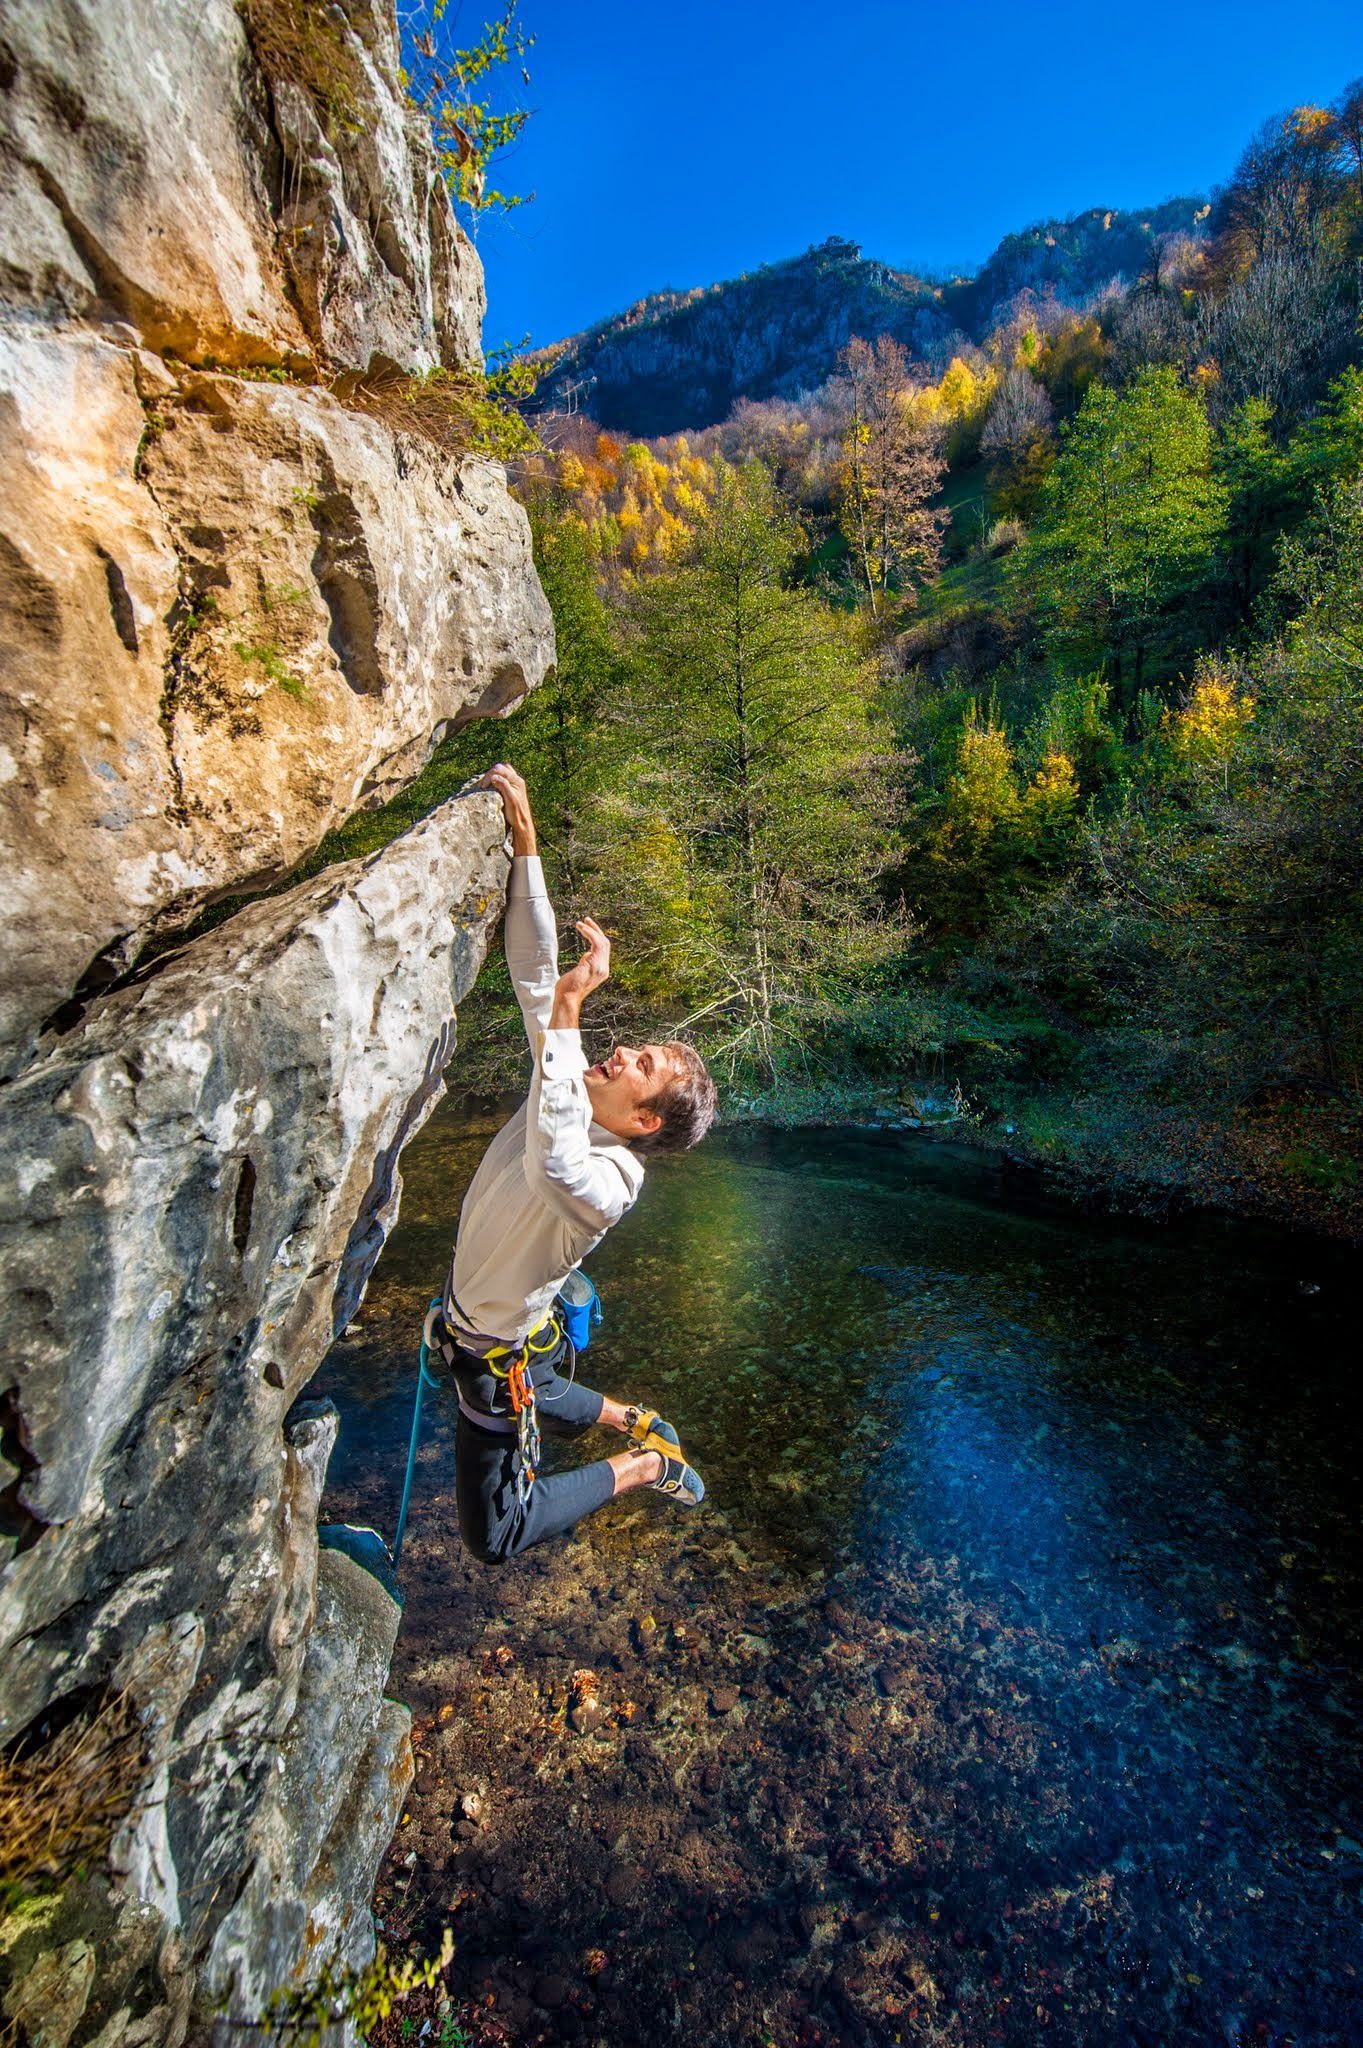 Climbing at the river